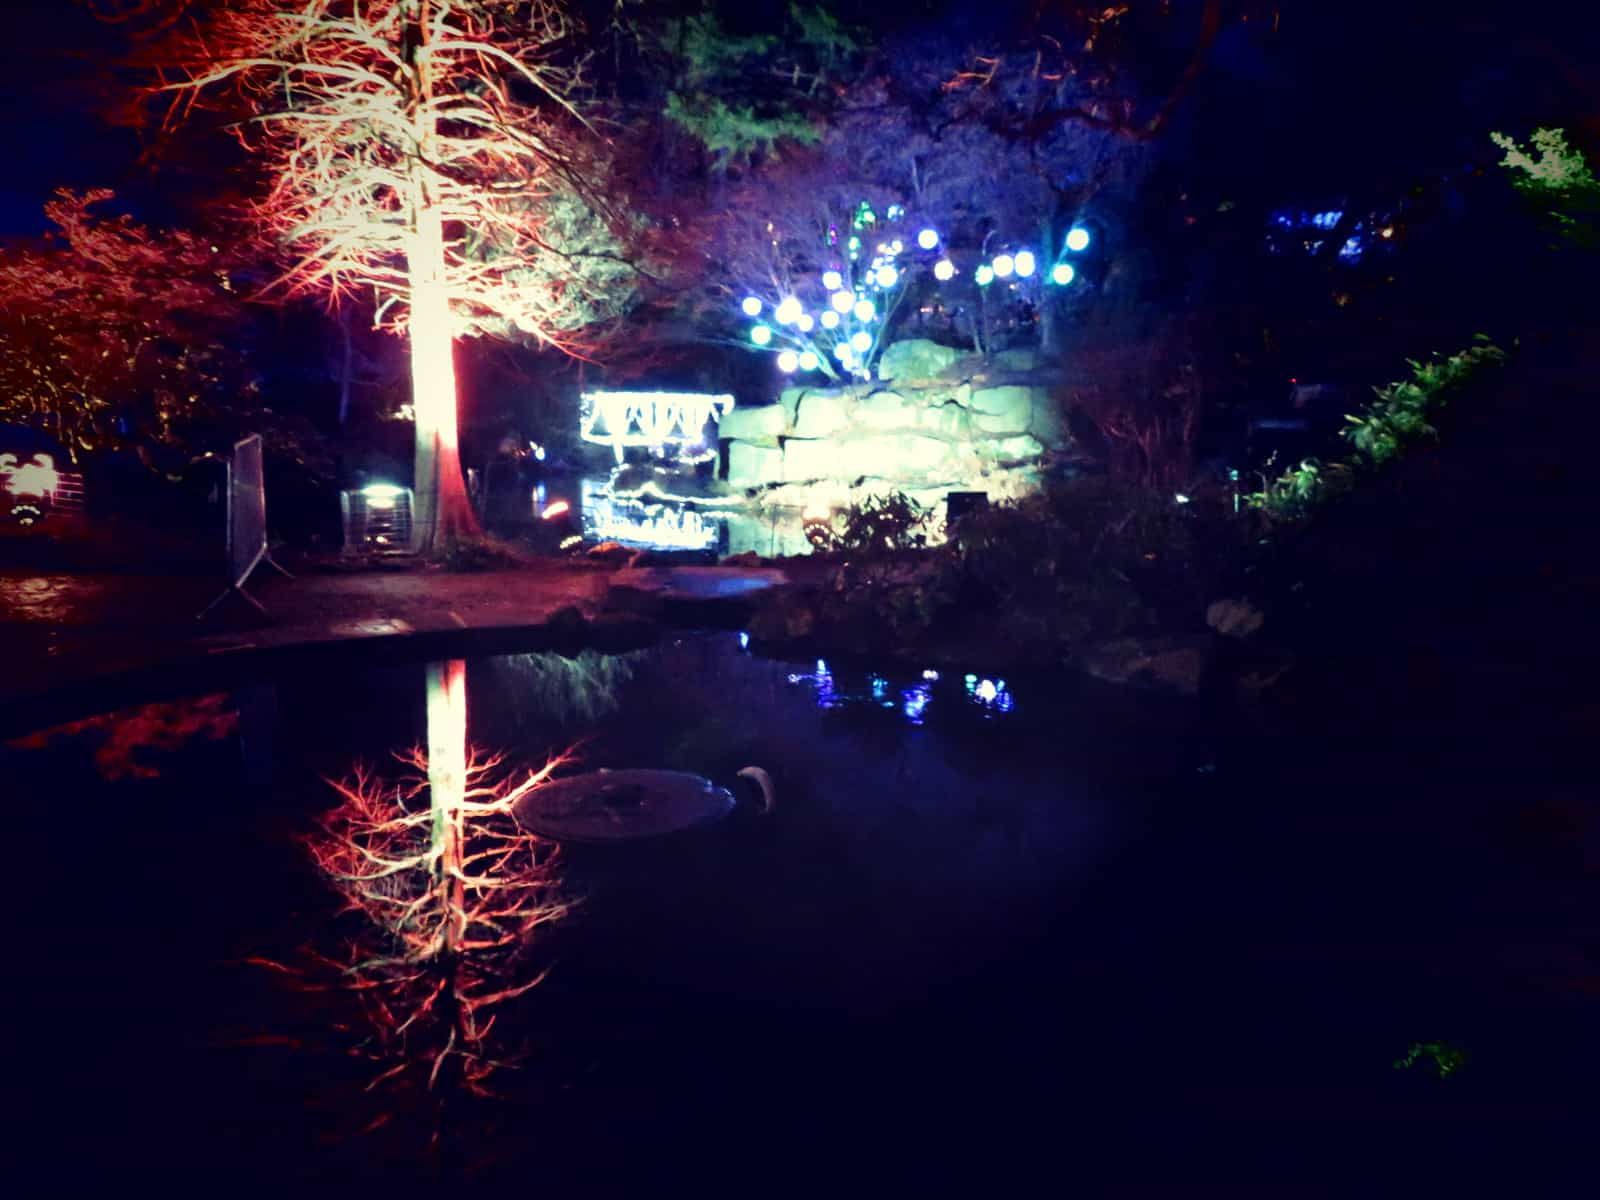 An illuminated tree is reflected in the water of a small pond